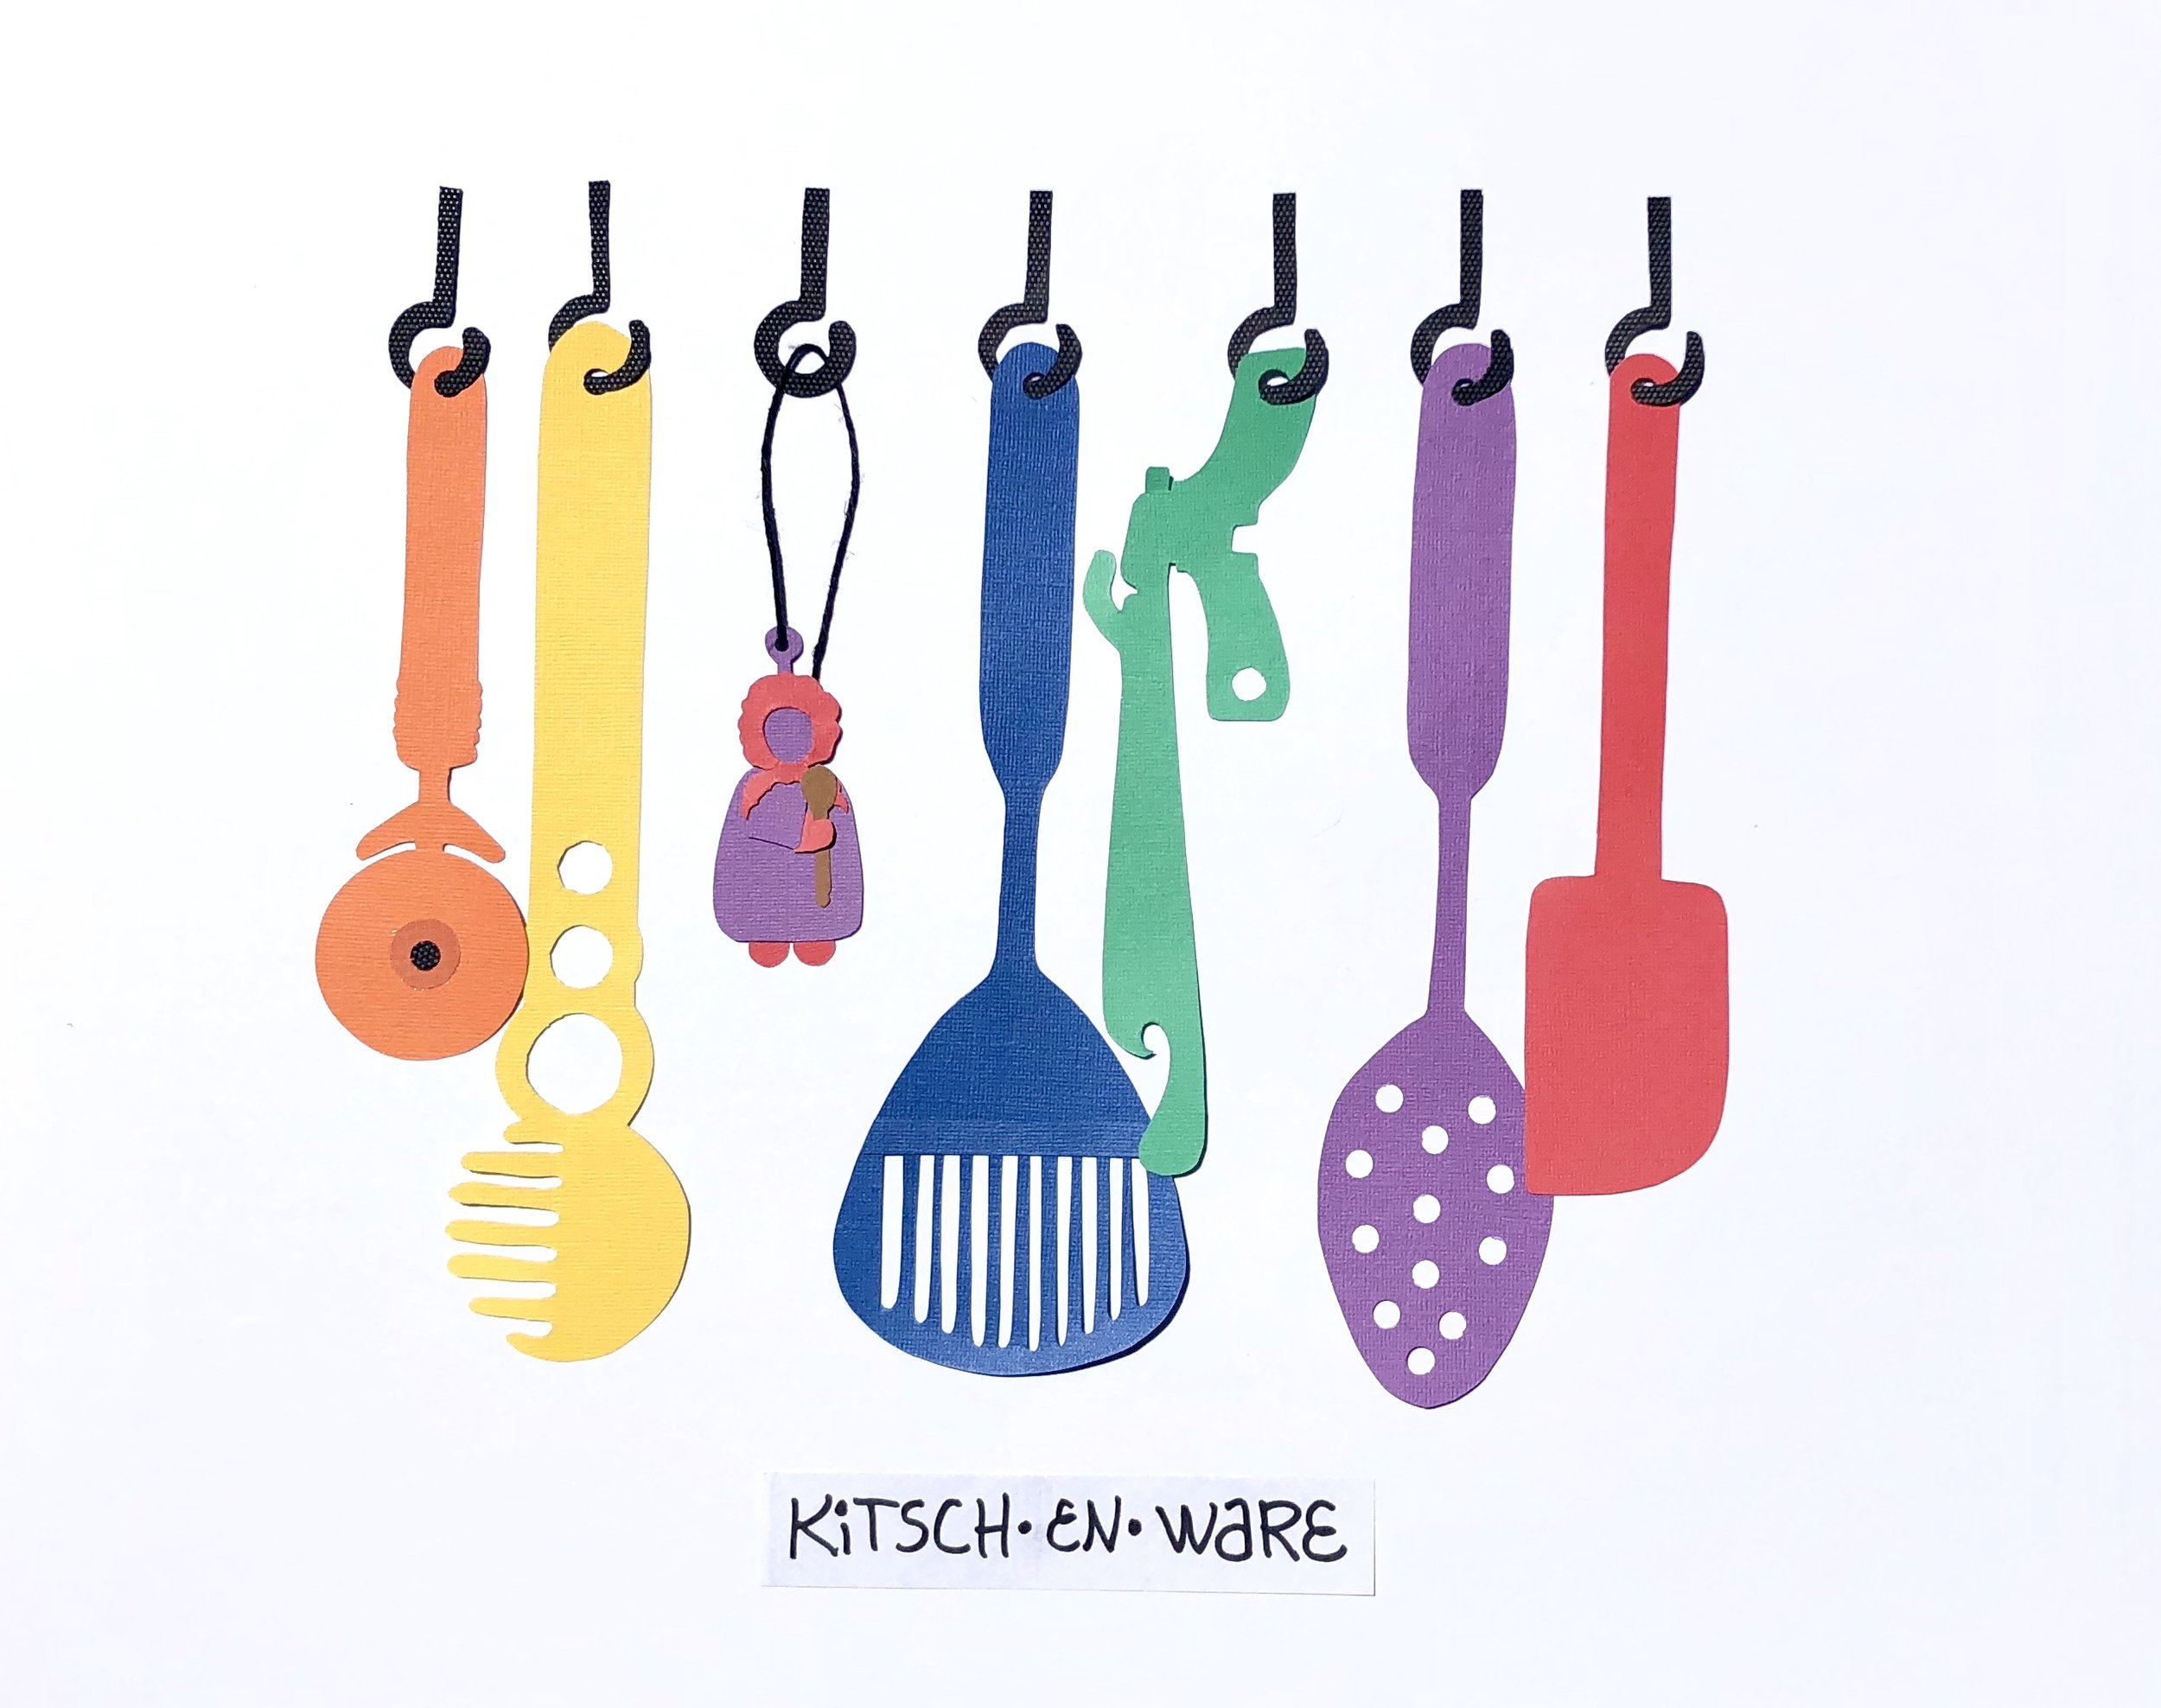 kitchen-ware-KariCates.JPG